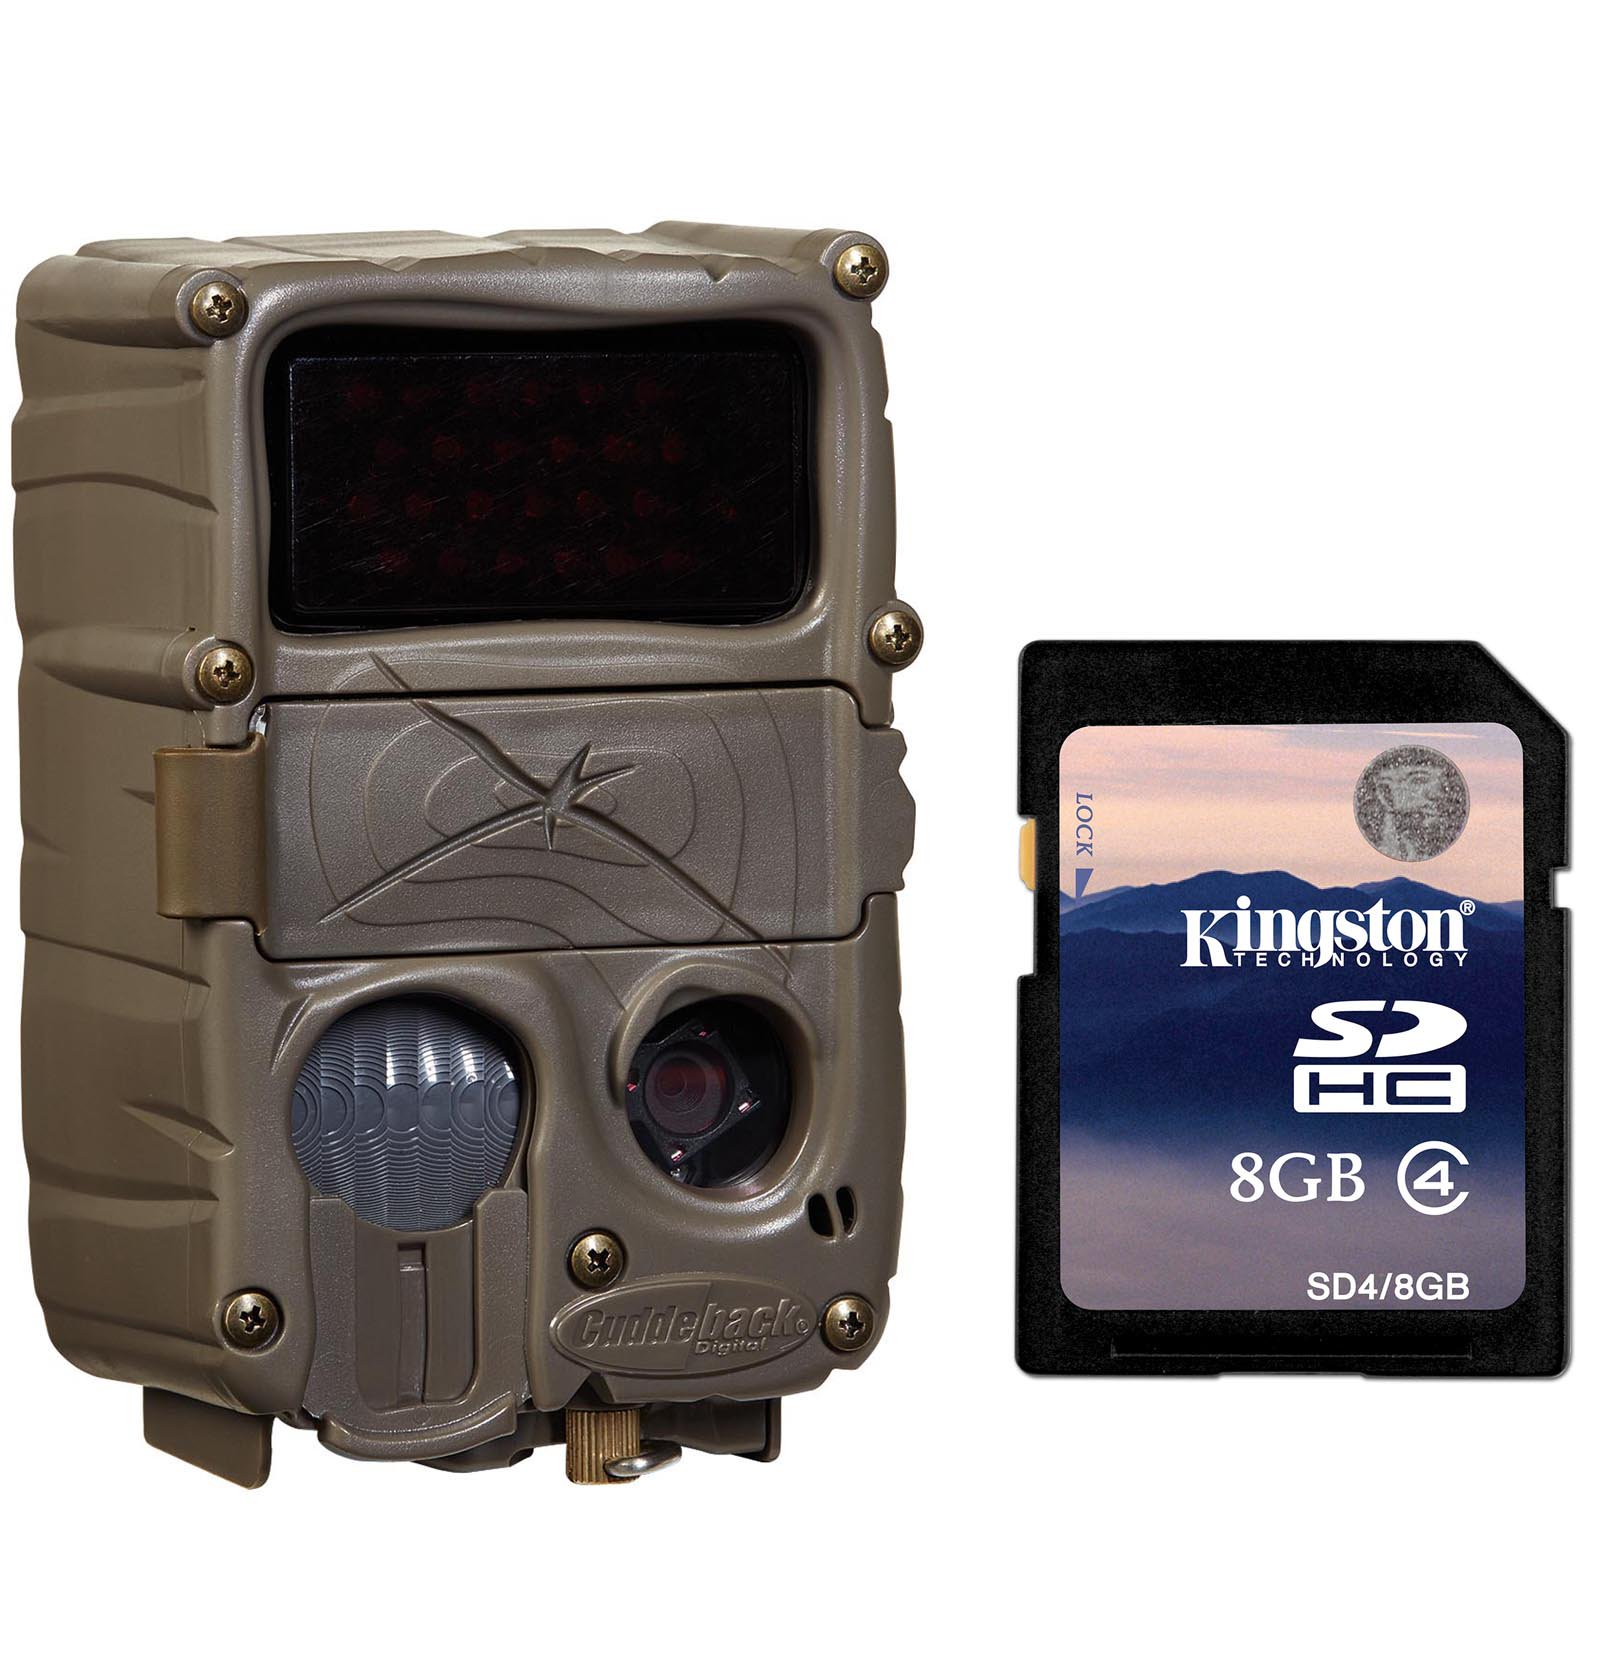 Cuddeback C3 No Glow 20MP Black Flash Xchange IR Trail Game Camera + 8GB SD Card by Cuddeback